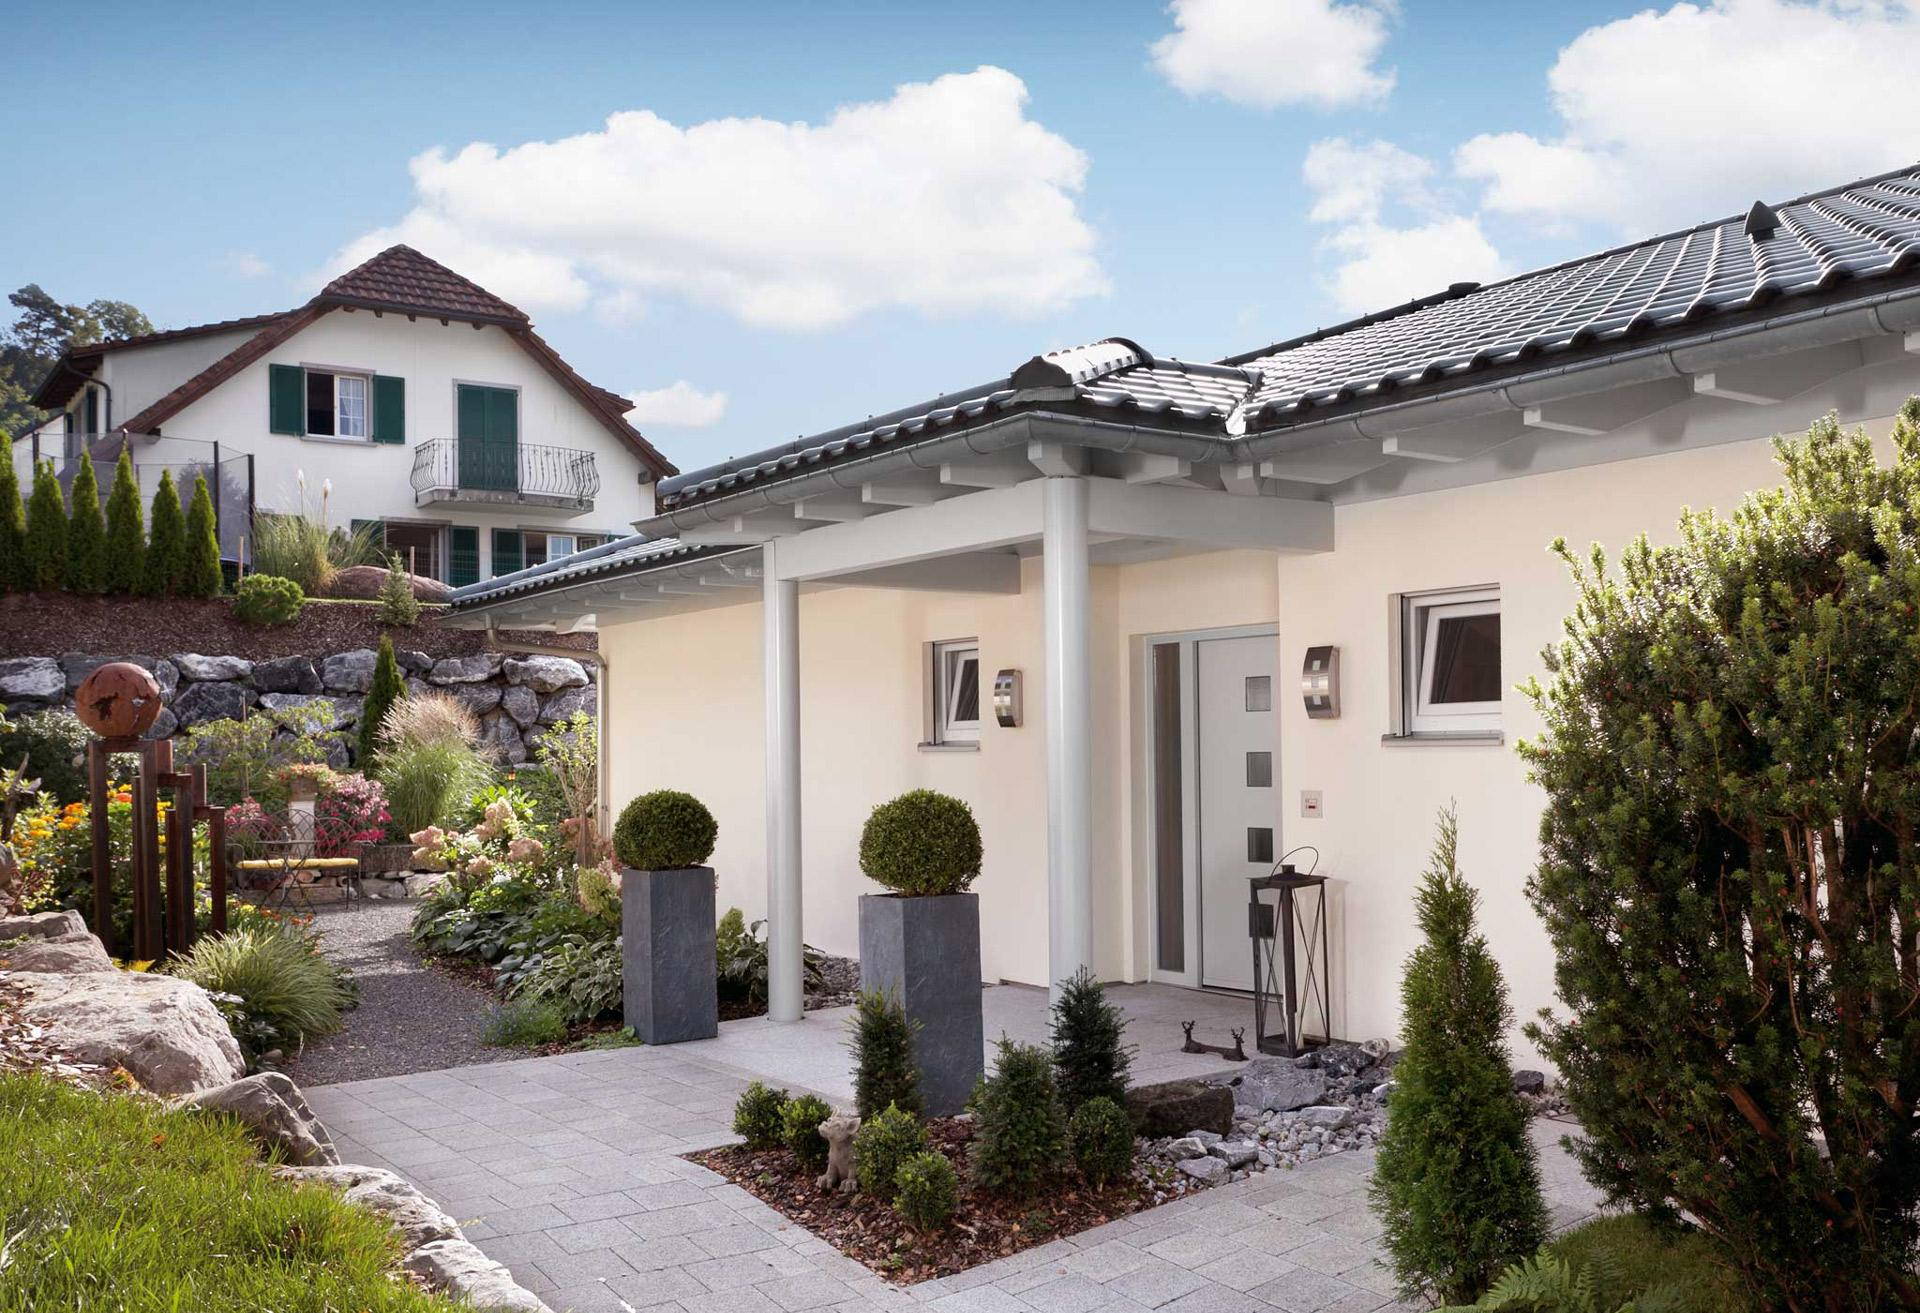 Bungalow With Hipped Roof E 10 173 2 Schworerhaus